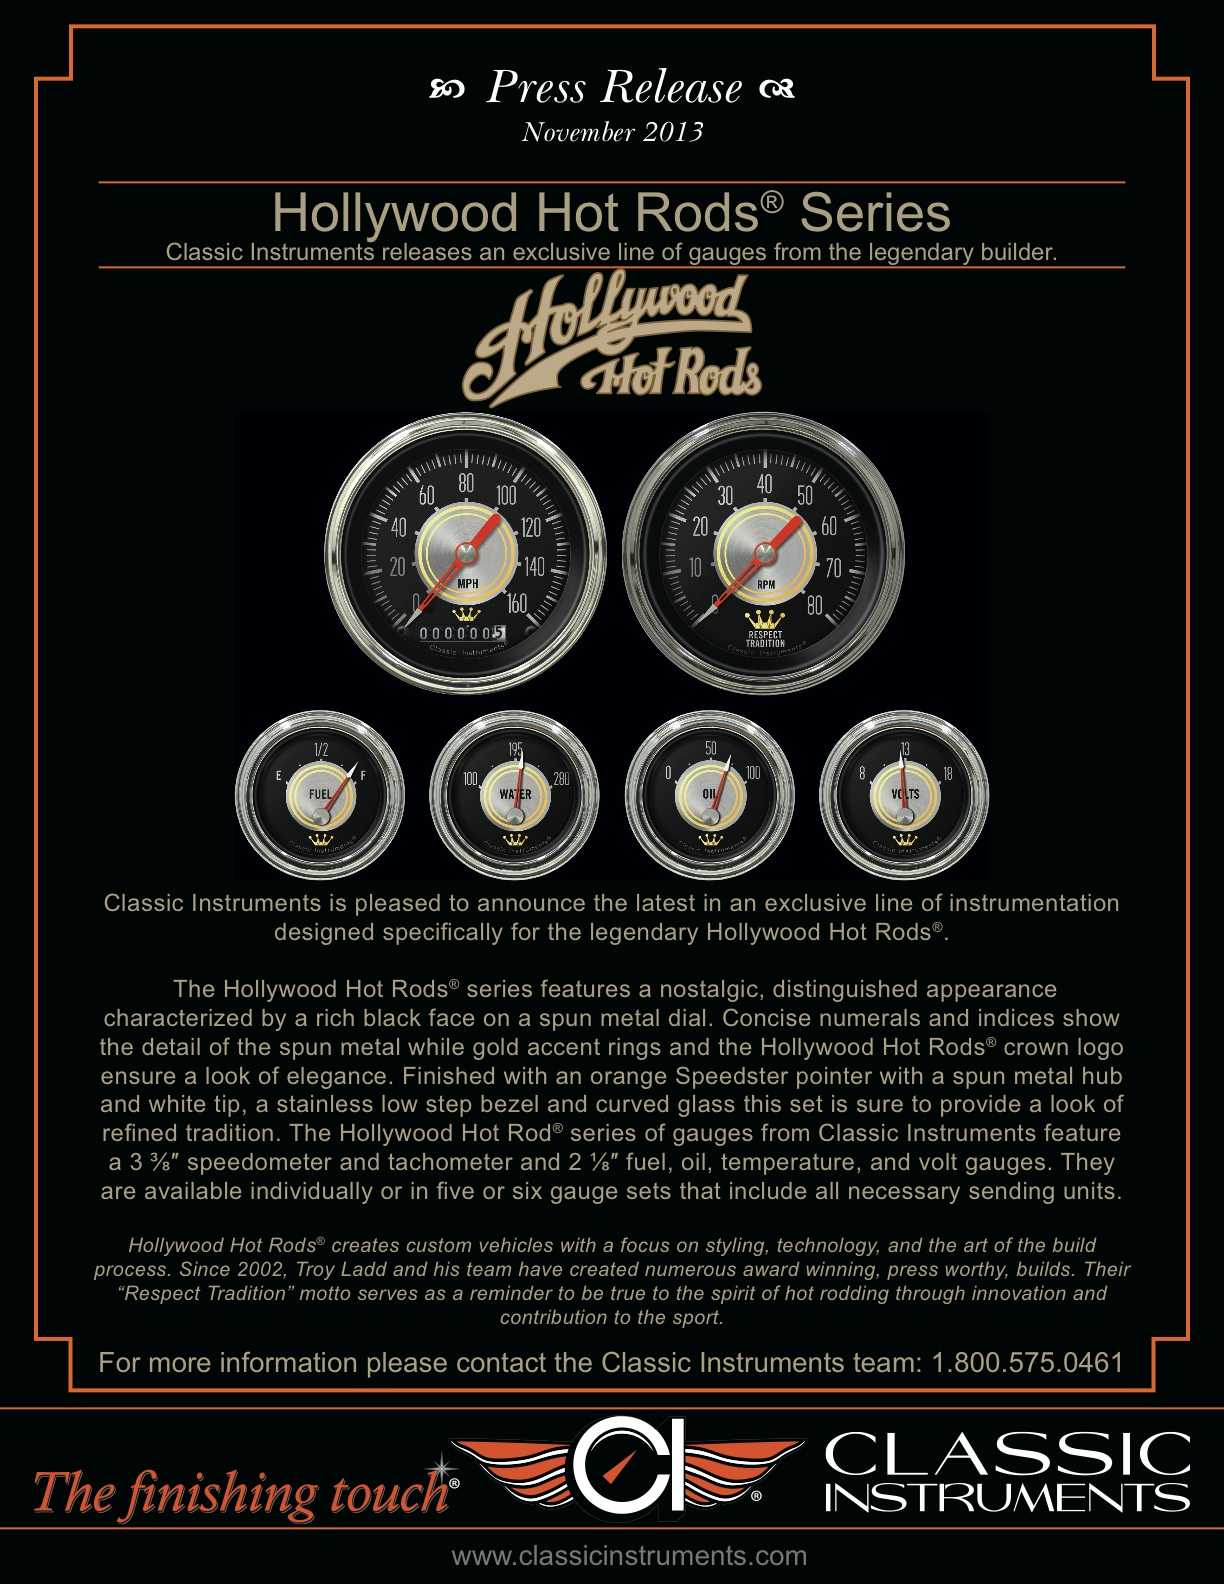 Classic_Instr_Hollywood_Hot_Rods_Press_Release